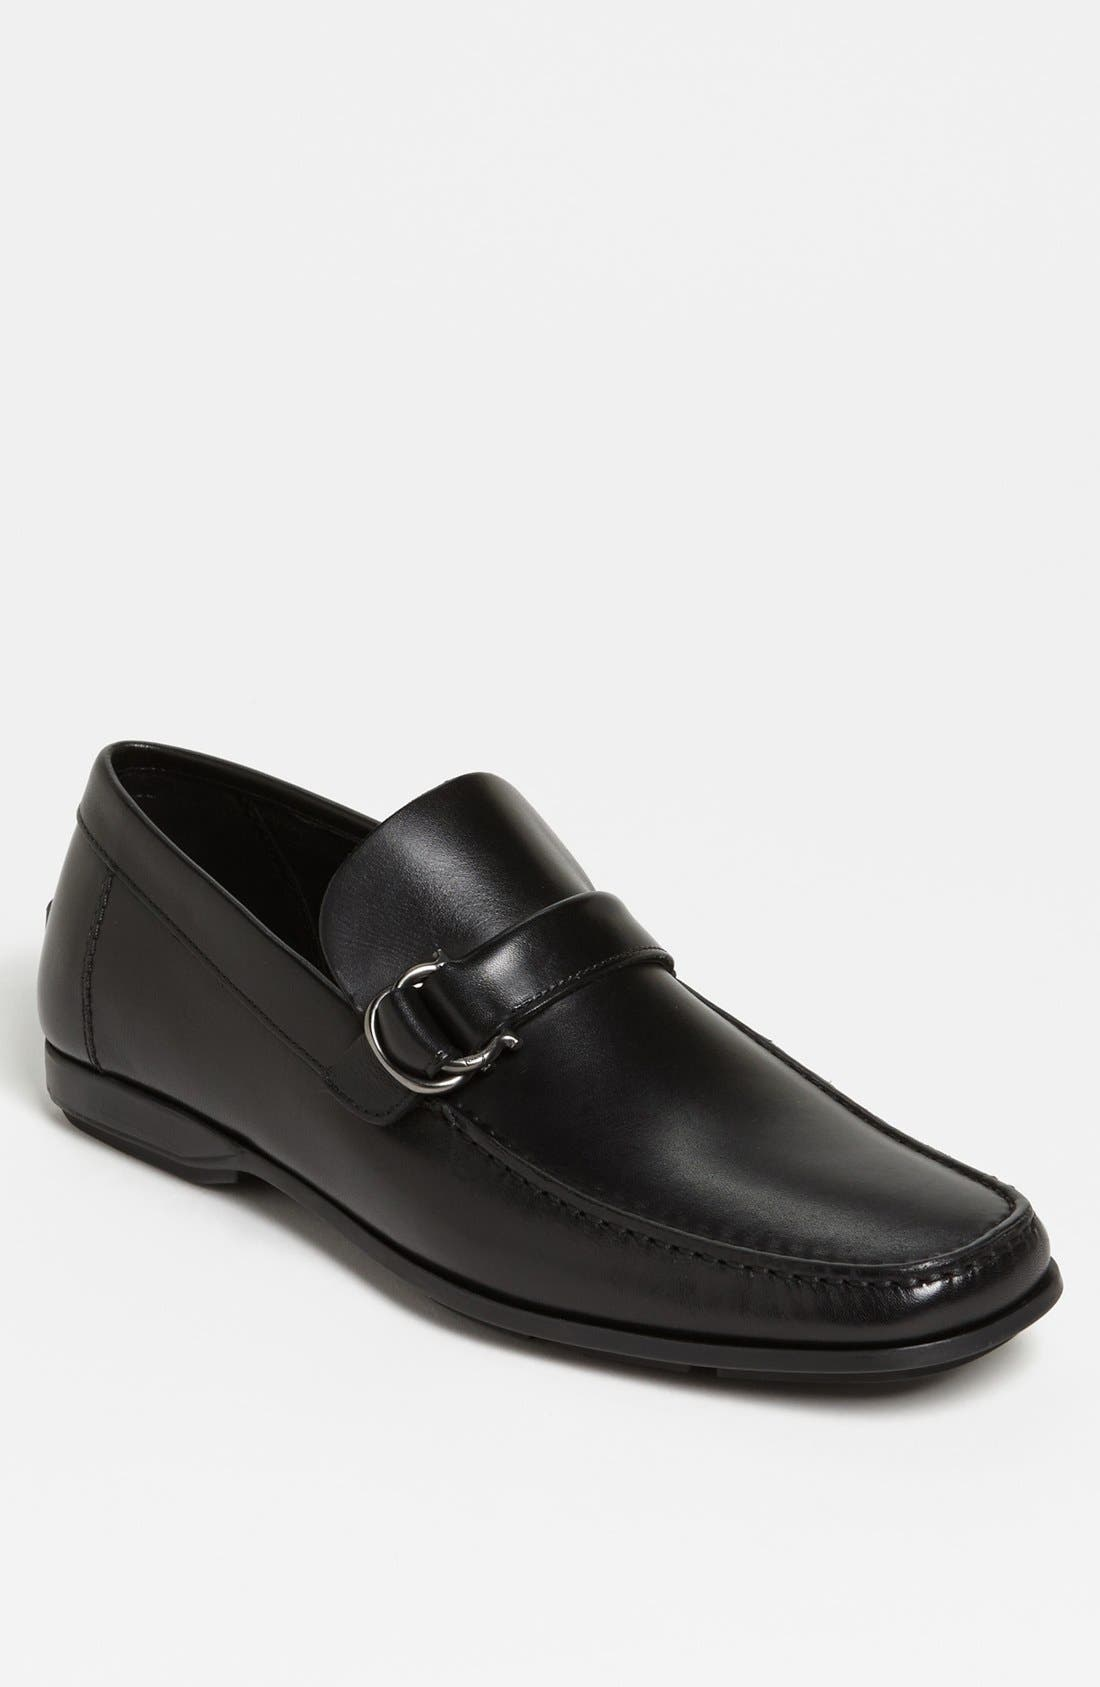 Alternate Image 1 Selected - Salvatore Ferragamo 'Tremiti' Bit Loafer